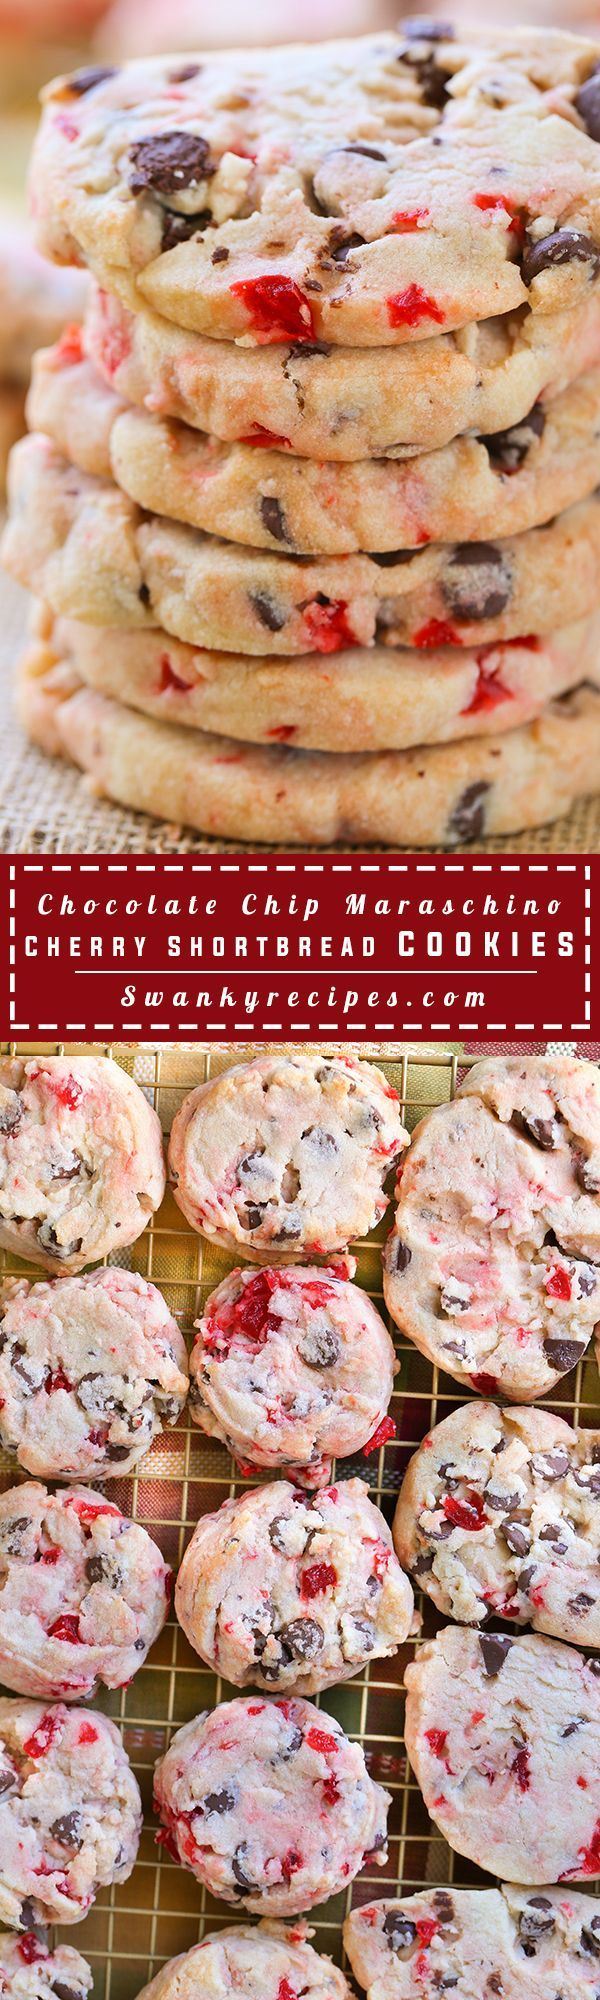 Soft shortbread cookies stuffed with chocolate chips and maraschino cherries. These cookies are hit for the holidays and make a large batch.